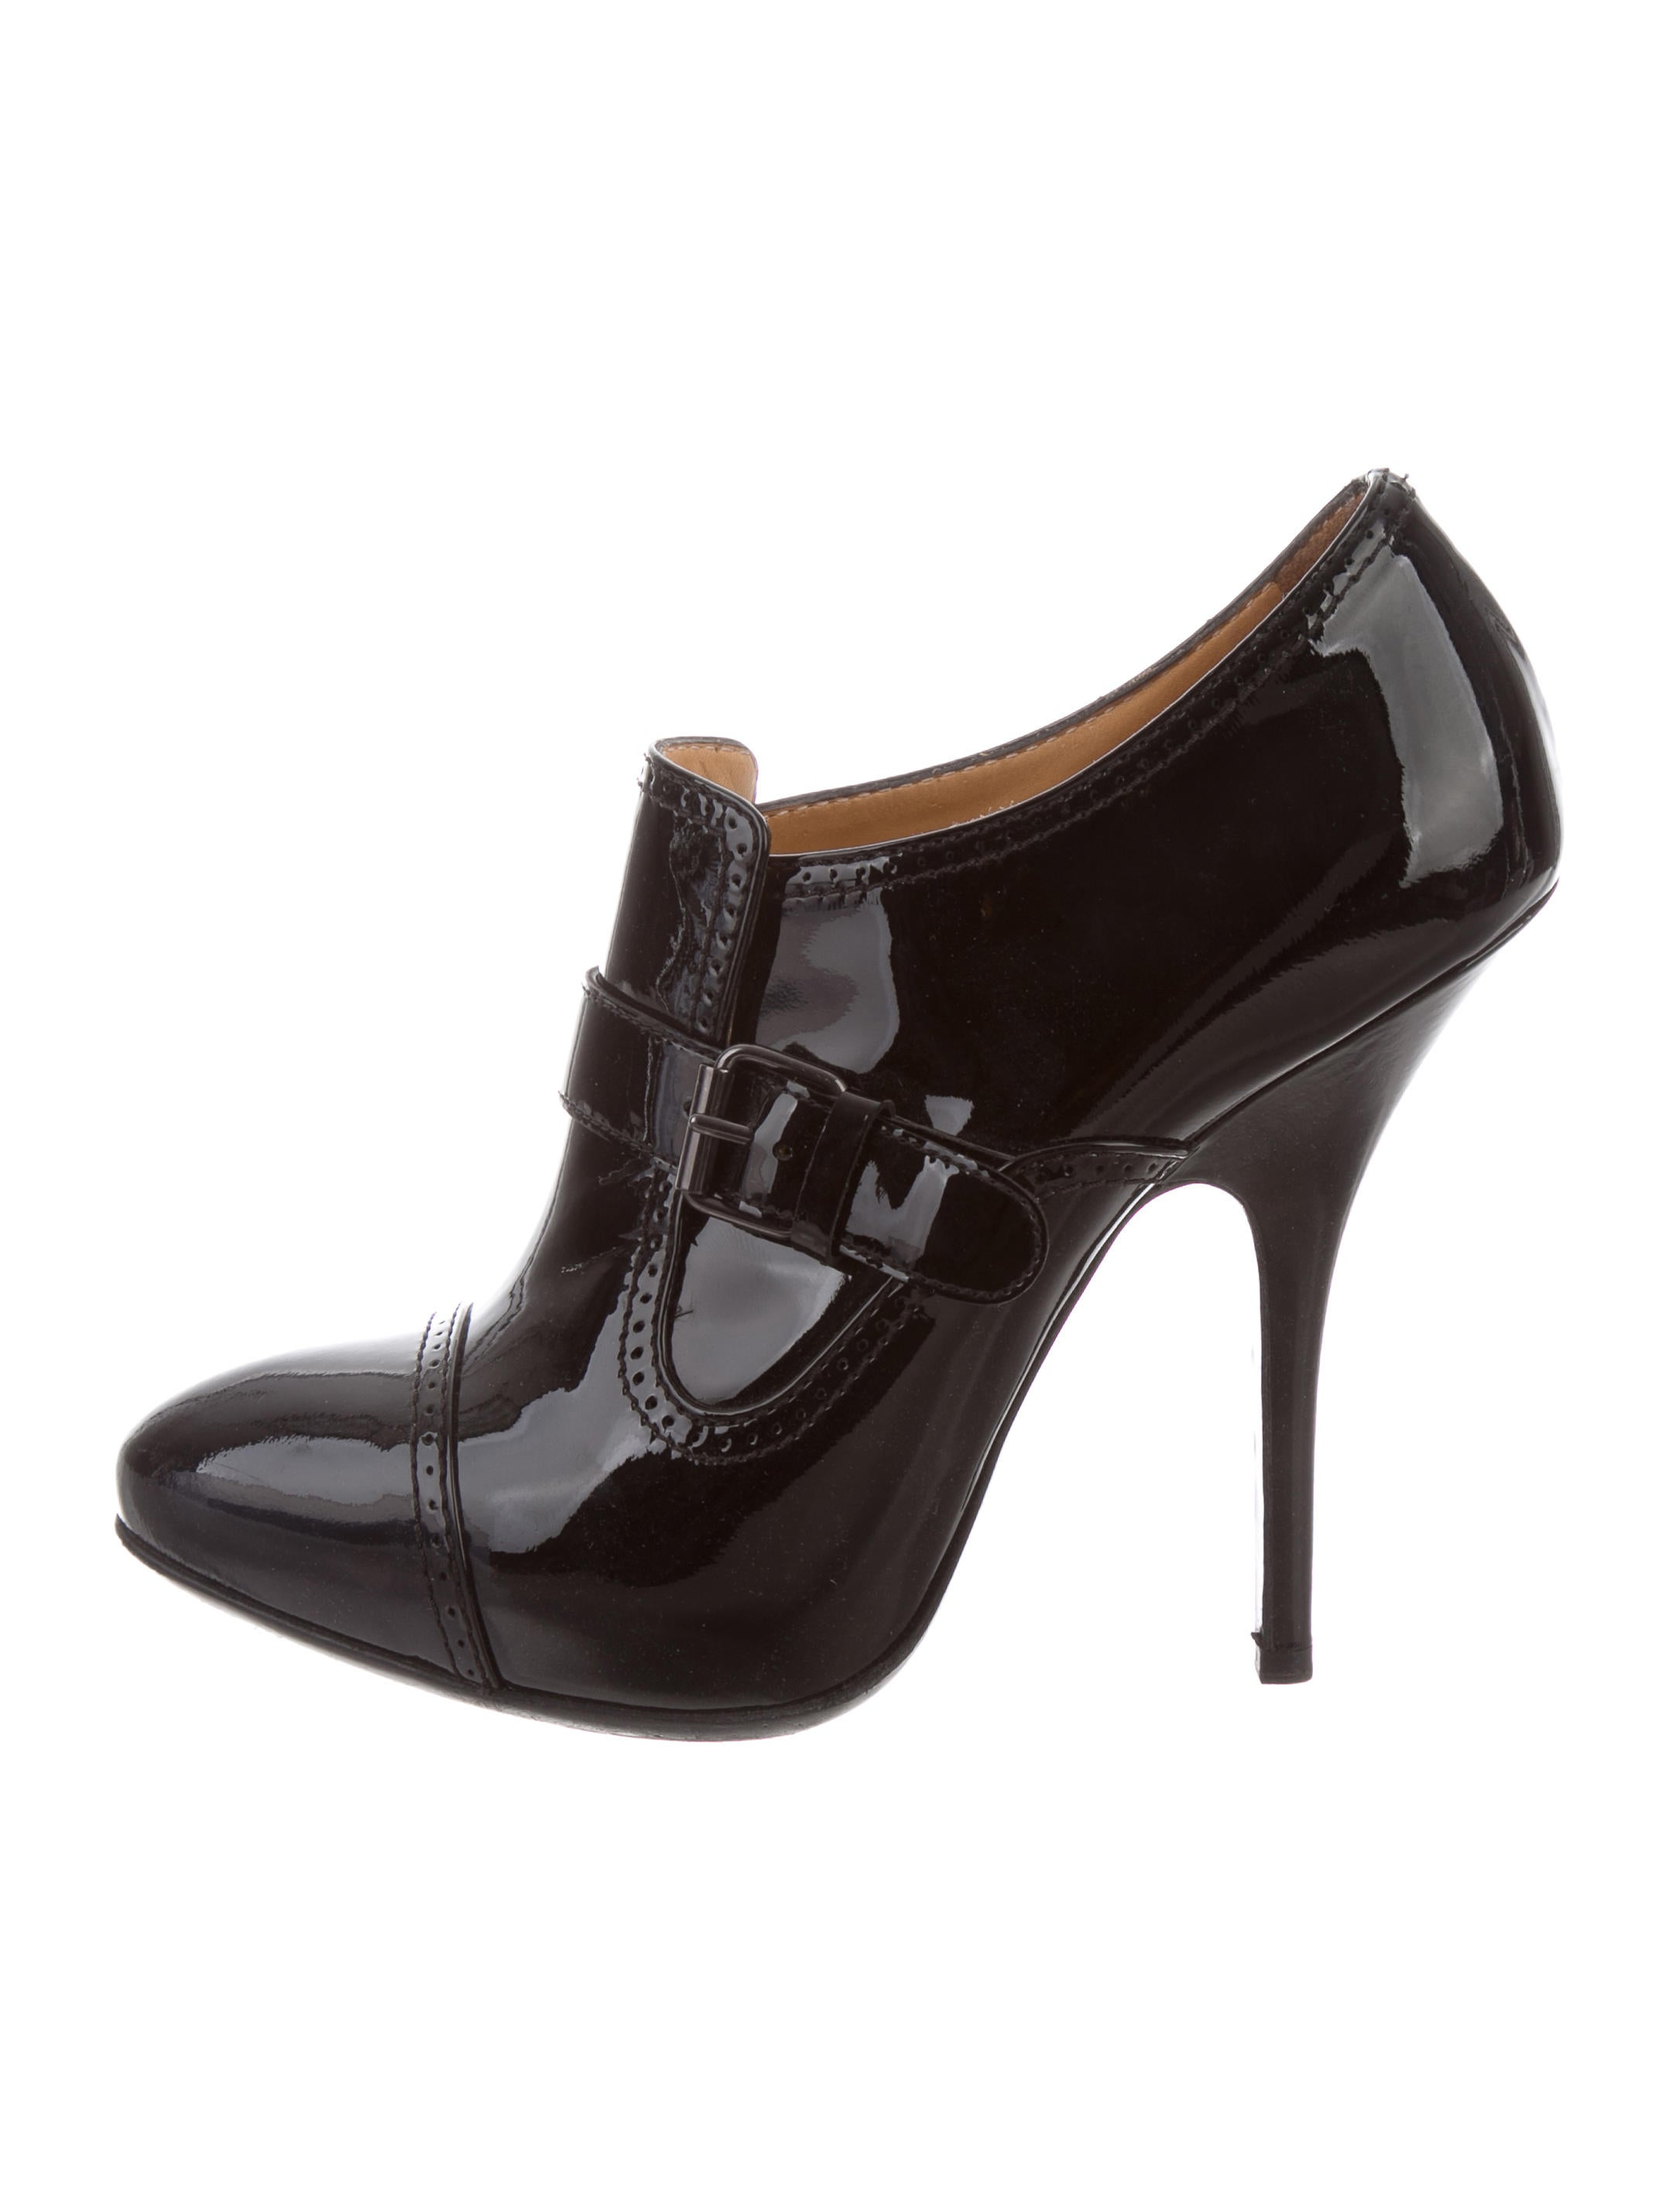 brand new unisex online Lanvin Patent Leather Buckle Booties the cheapest cheap online free shipping browse shopping online outlet sale huge surprise sale online 8rpPwu2PqW